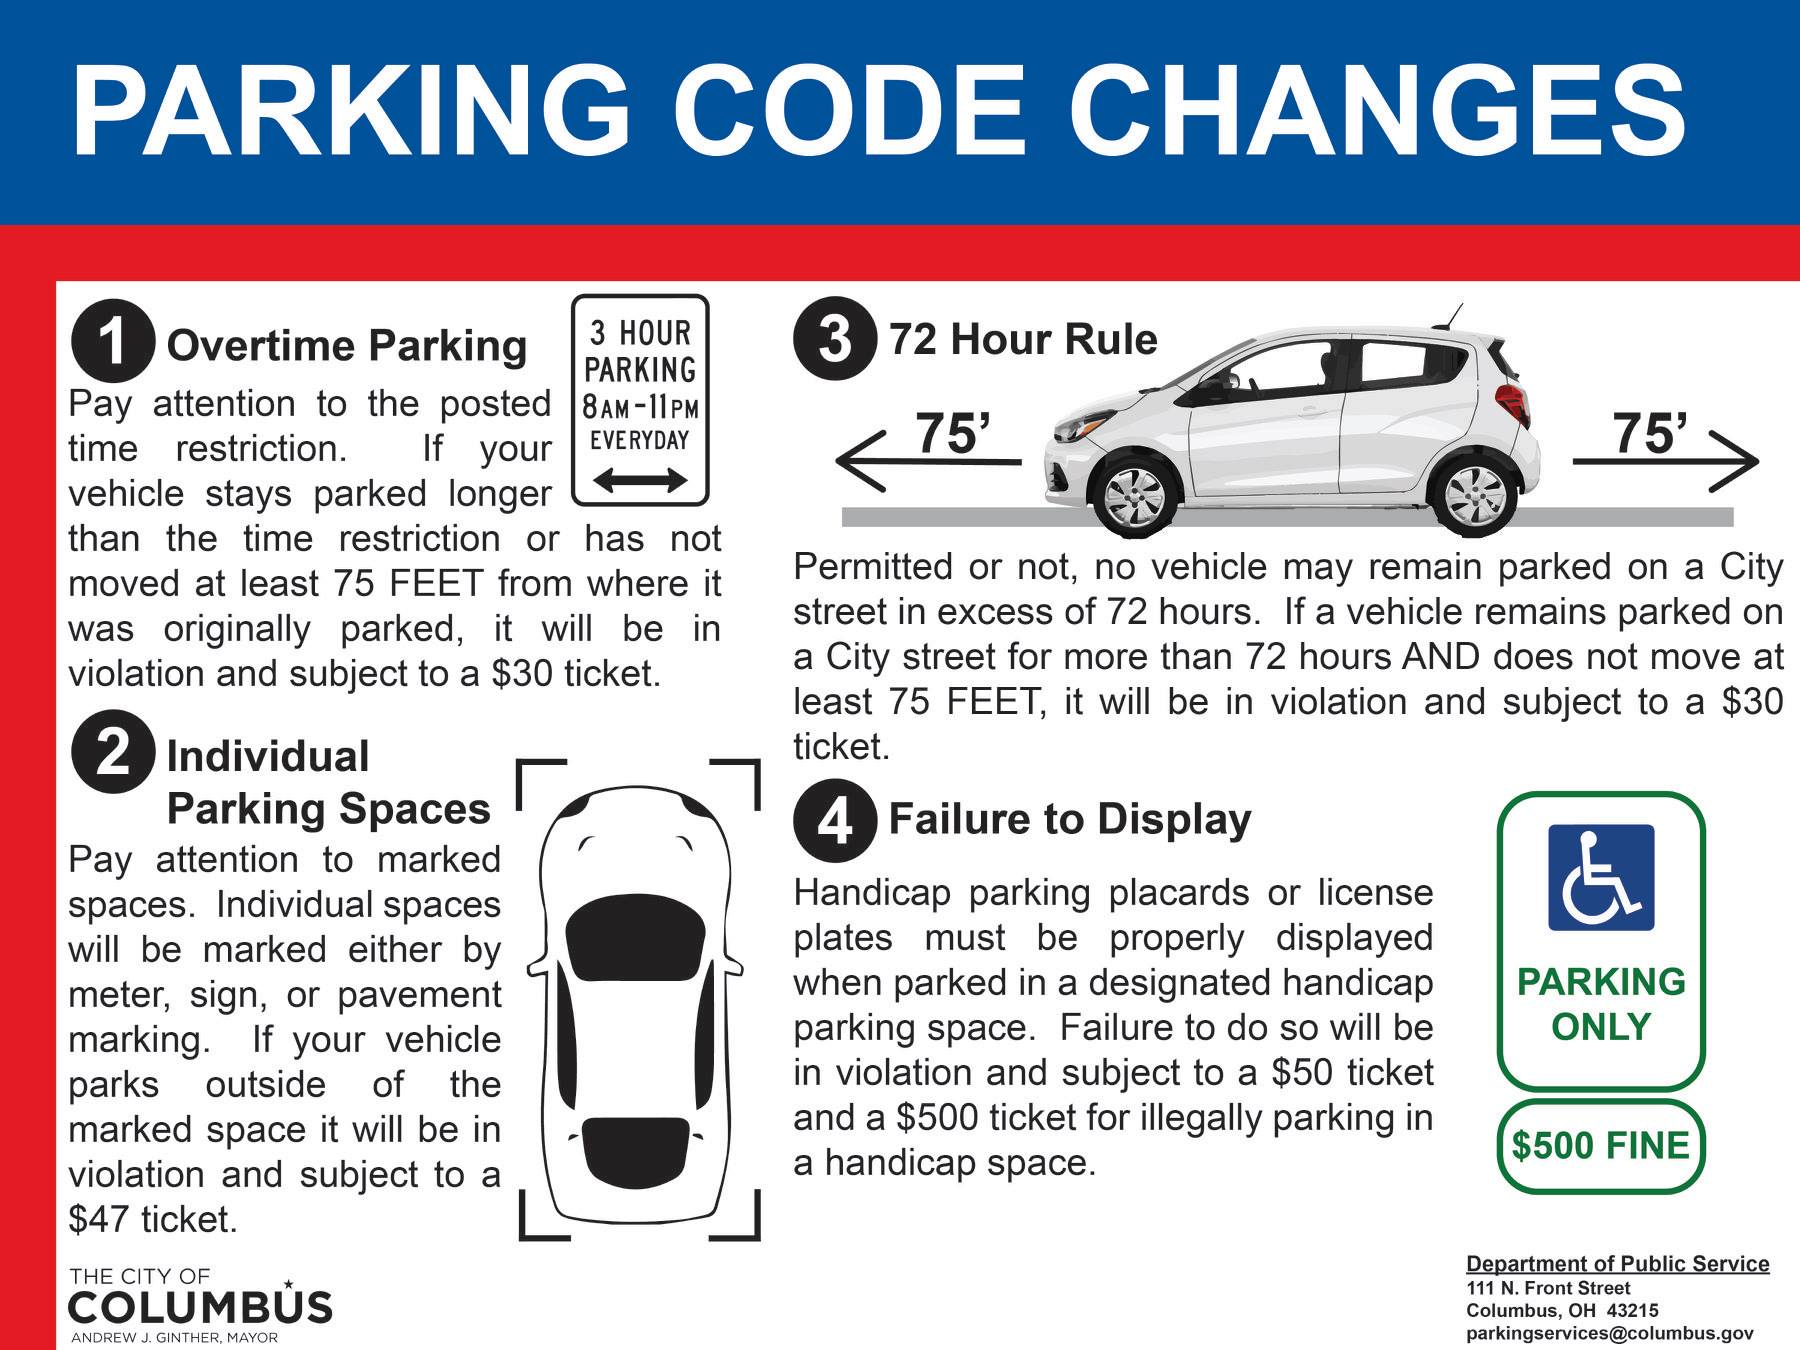 Parking Code Changes for City of Columbus 2018 - SoHud